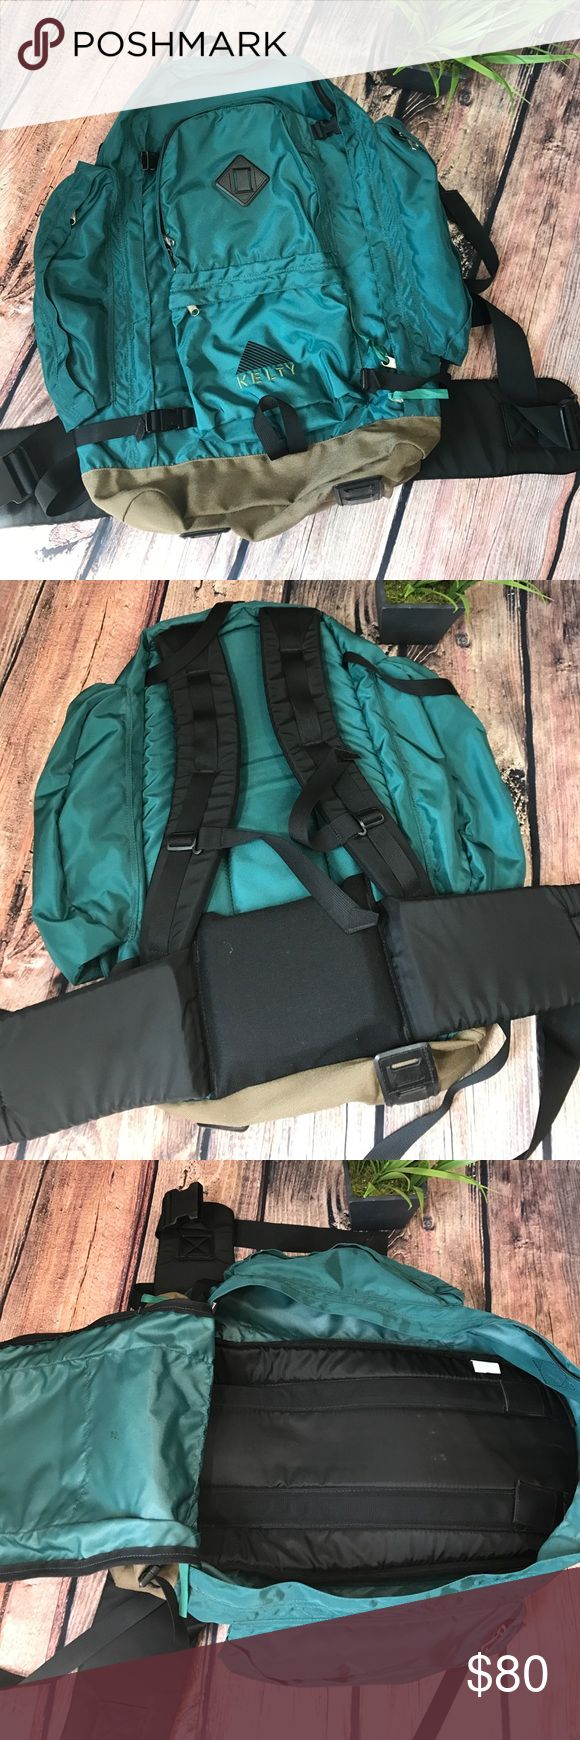 Vintage Canvas Kelty Backpack Pack hiking Vintage Canvas Kelty Redwing / Horizon 50 Liter Internal Frame Backpack. Large main zippered pocket, and 4 additional zippered pockets. Adjustable straps. Kelty Bags